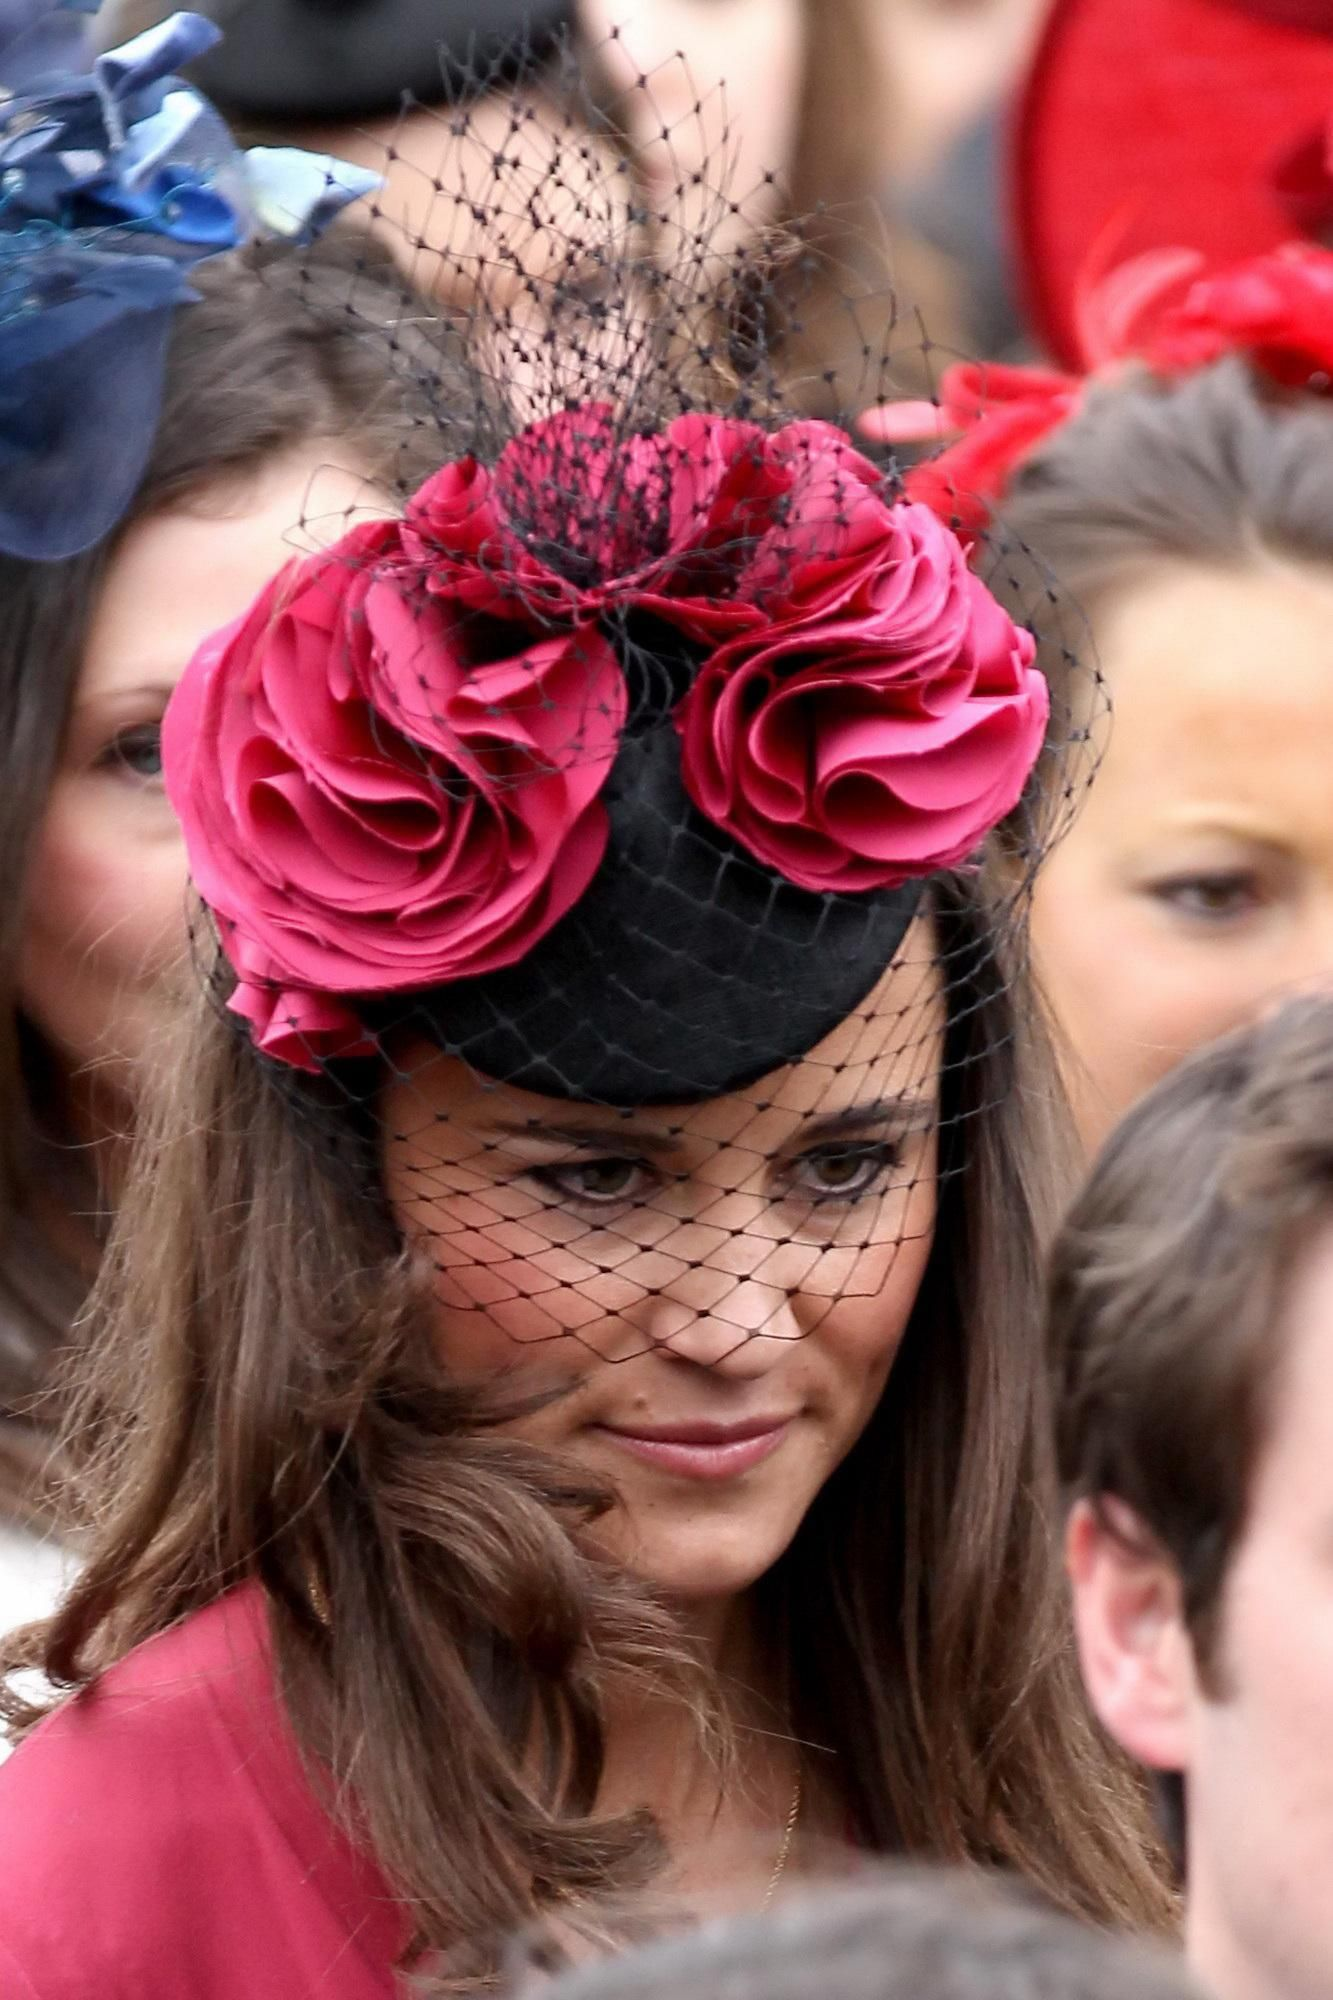 Hand over the hat, Pippa